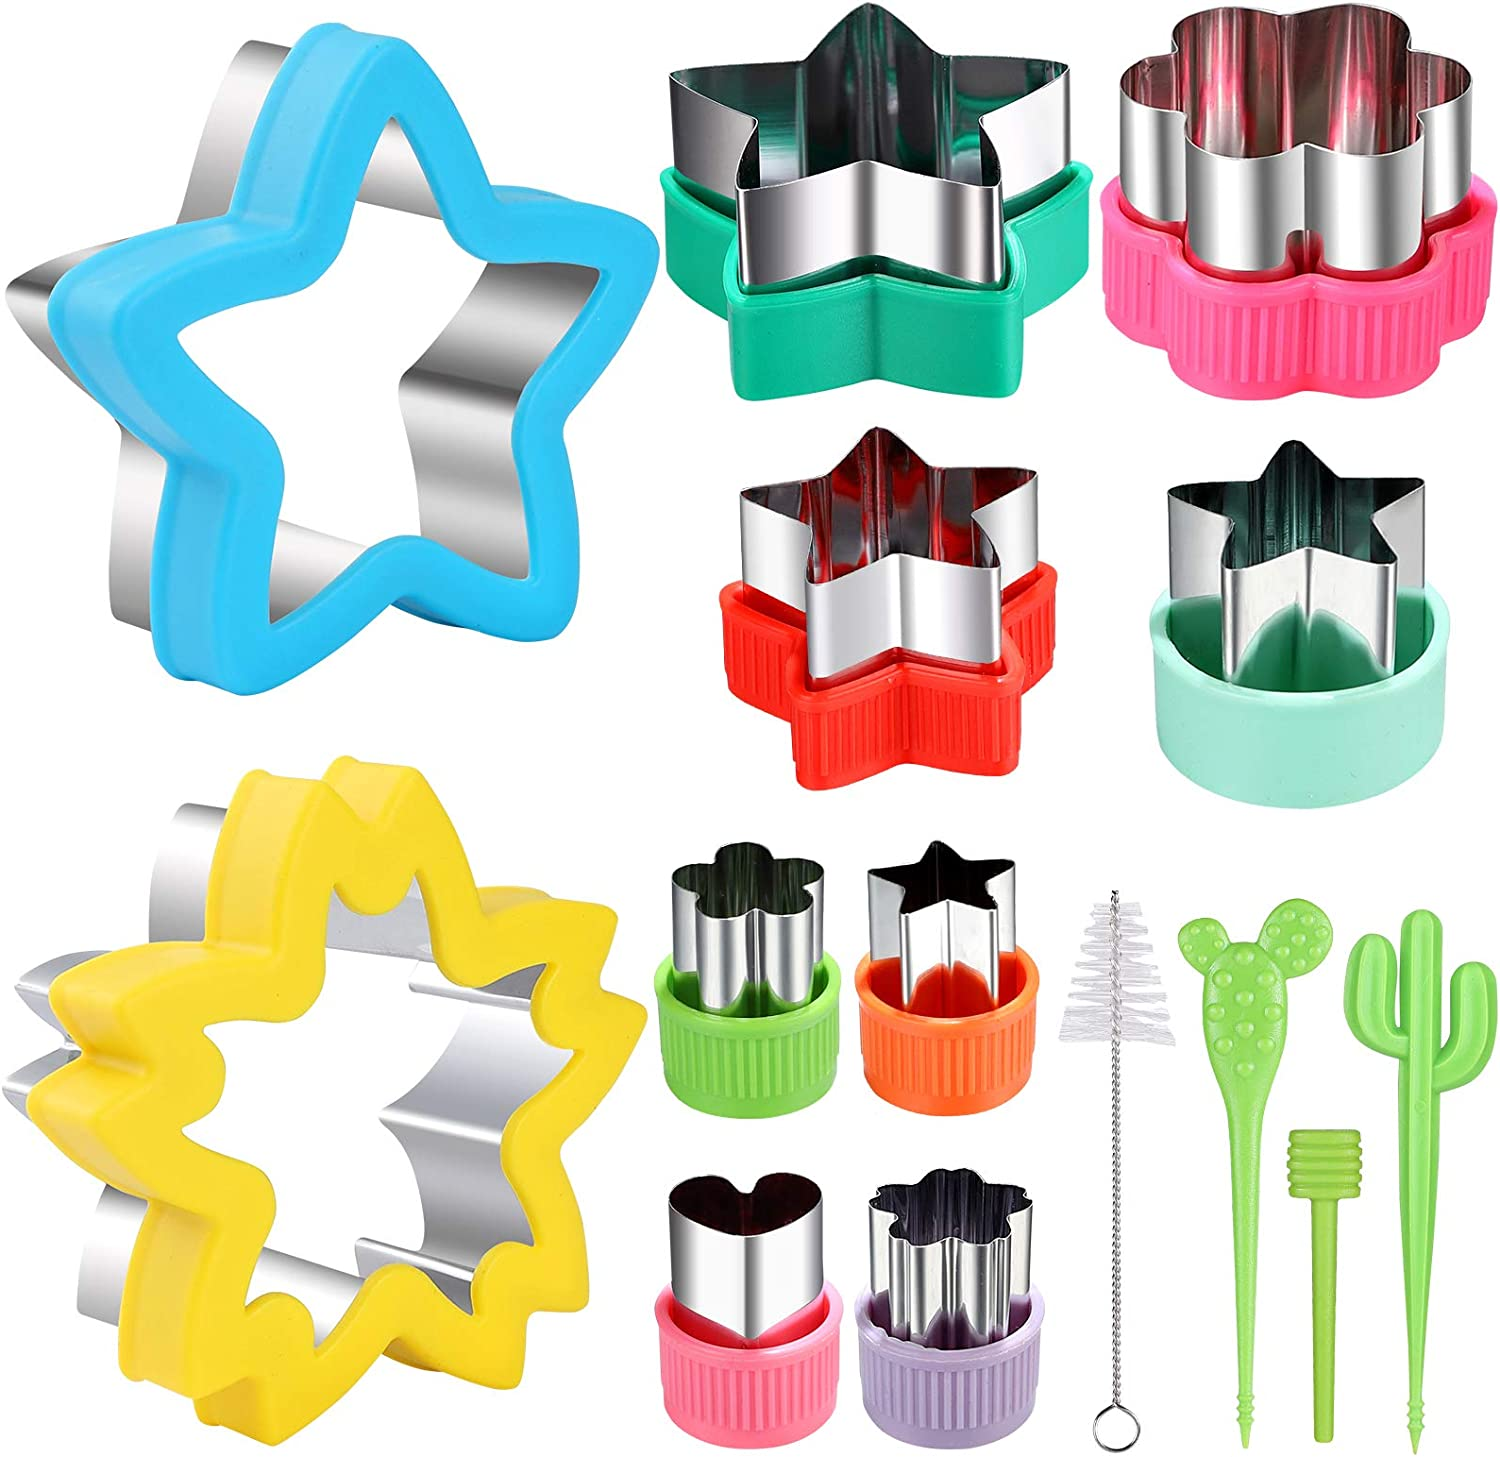 Star Cookie Cutter molds Set,Sandwiches,Mini Pie, Fruit and Cookie Stamps Mold, Cookie Cutter Decorative Food for Kids Baking and Food Supplement Tools Accessories Crafts for Kitchen